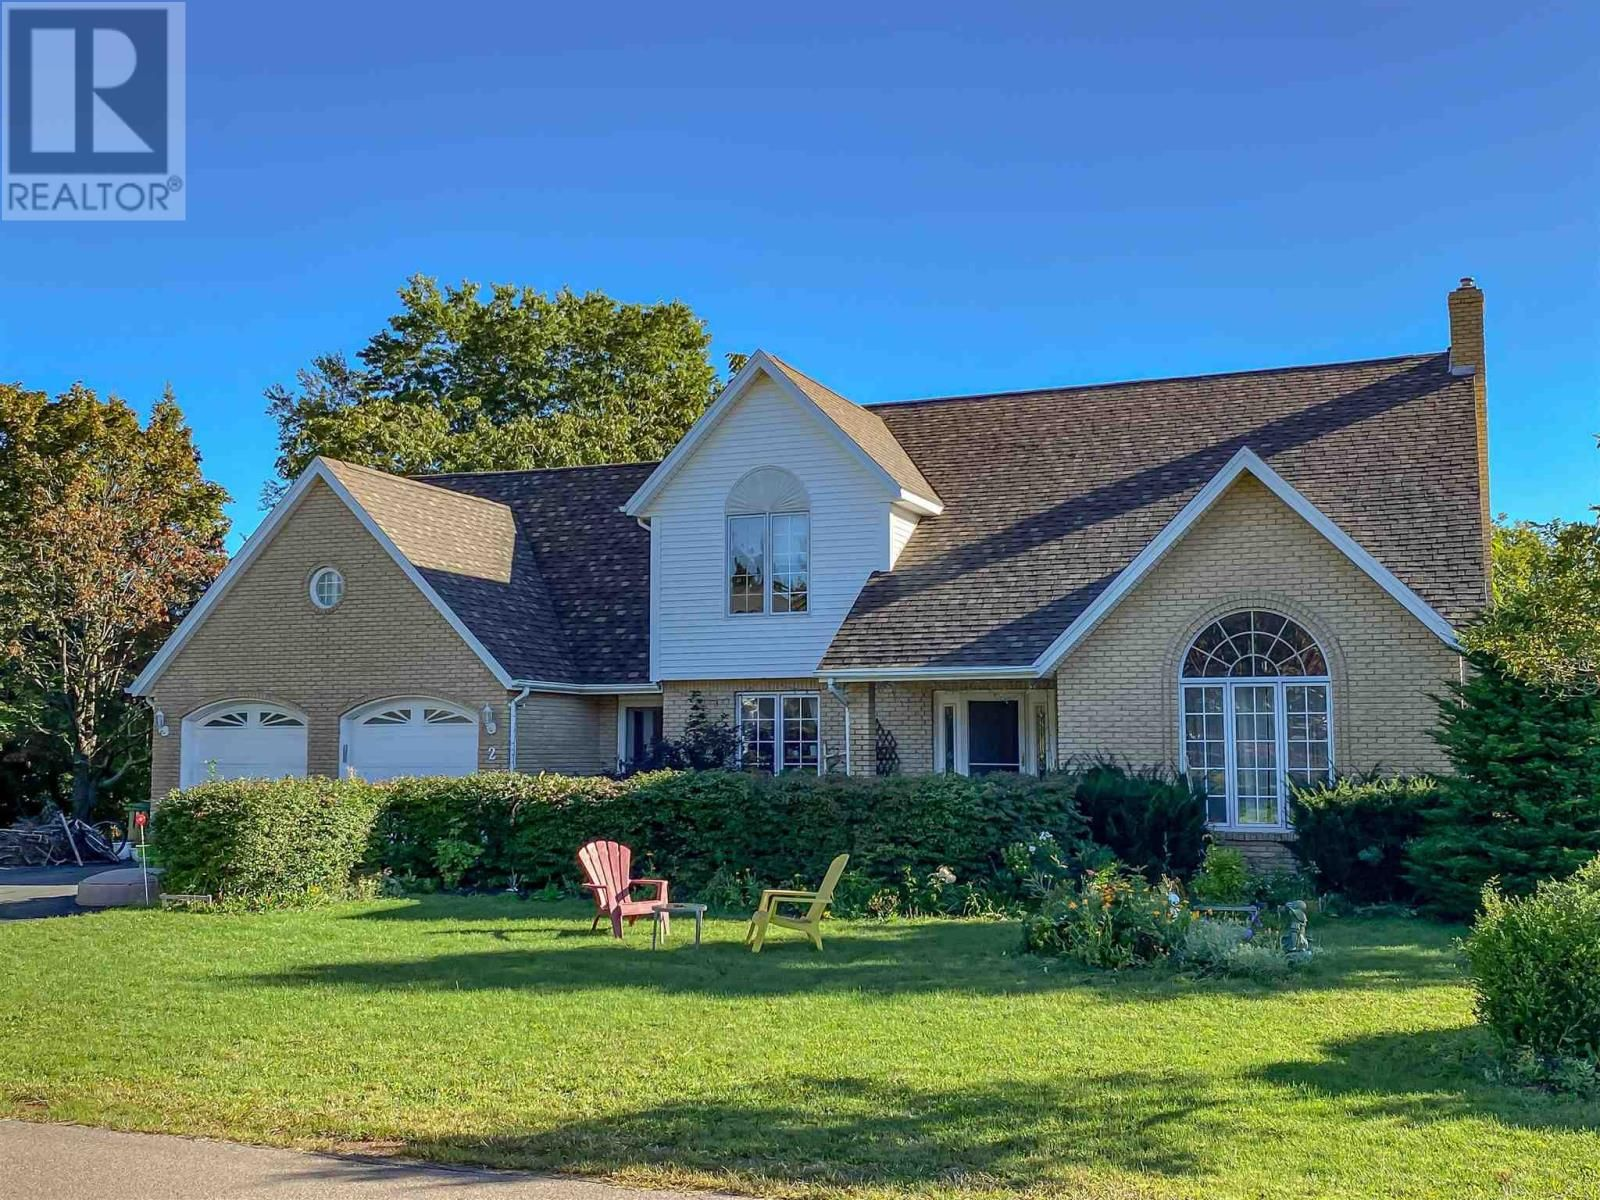 Main Photo: 2 England Circle in Charlottetown: House for sale : MLS®# 202123772